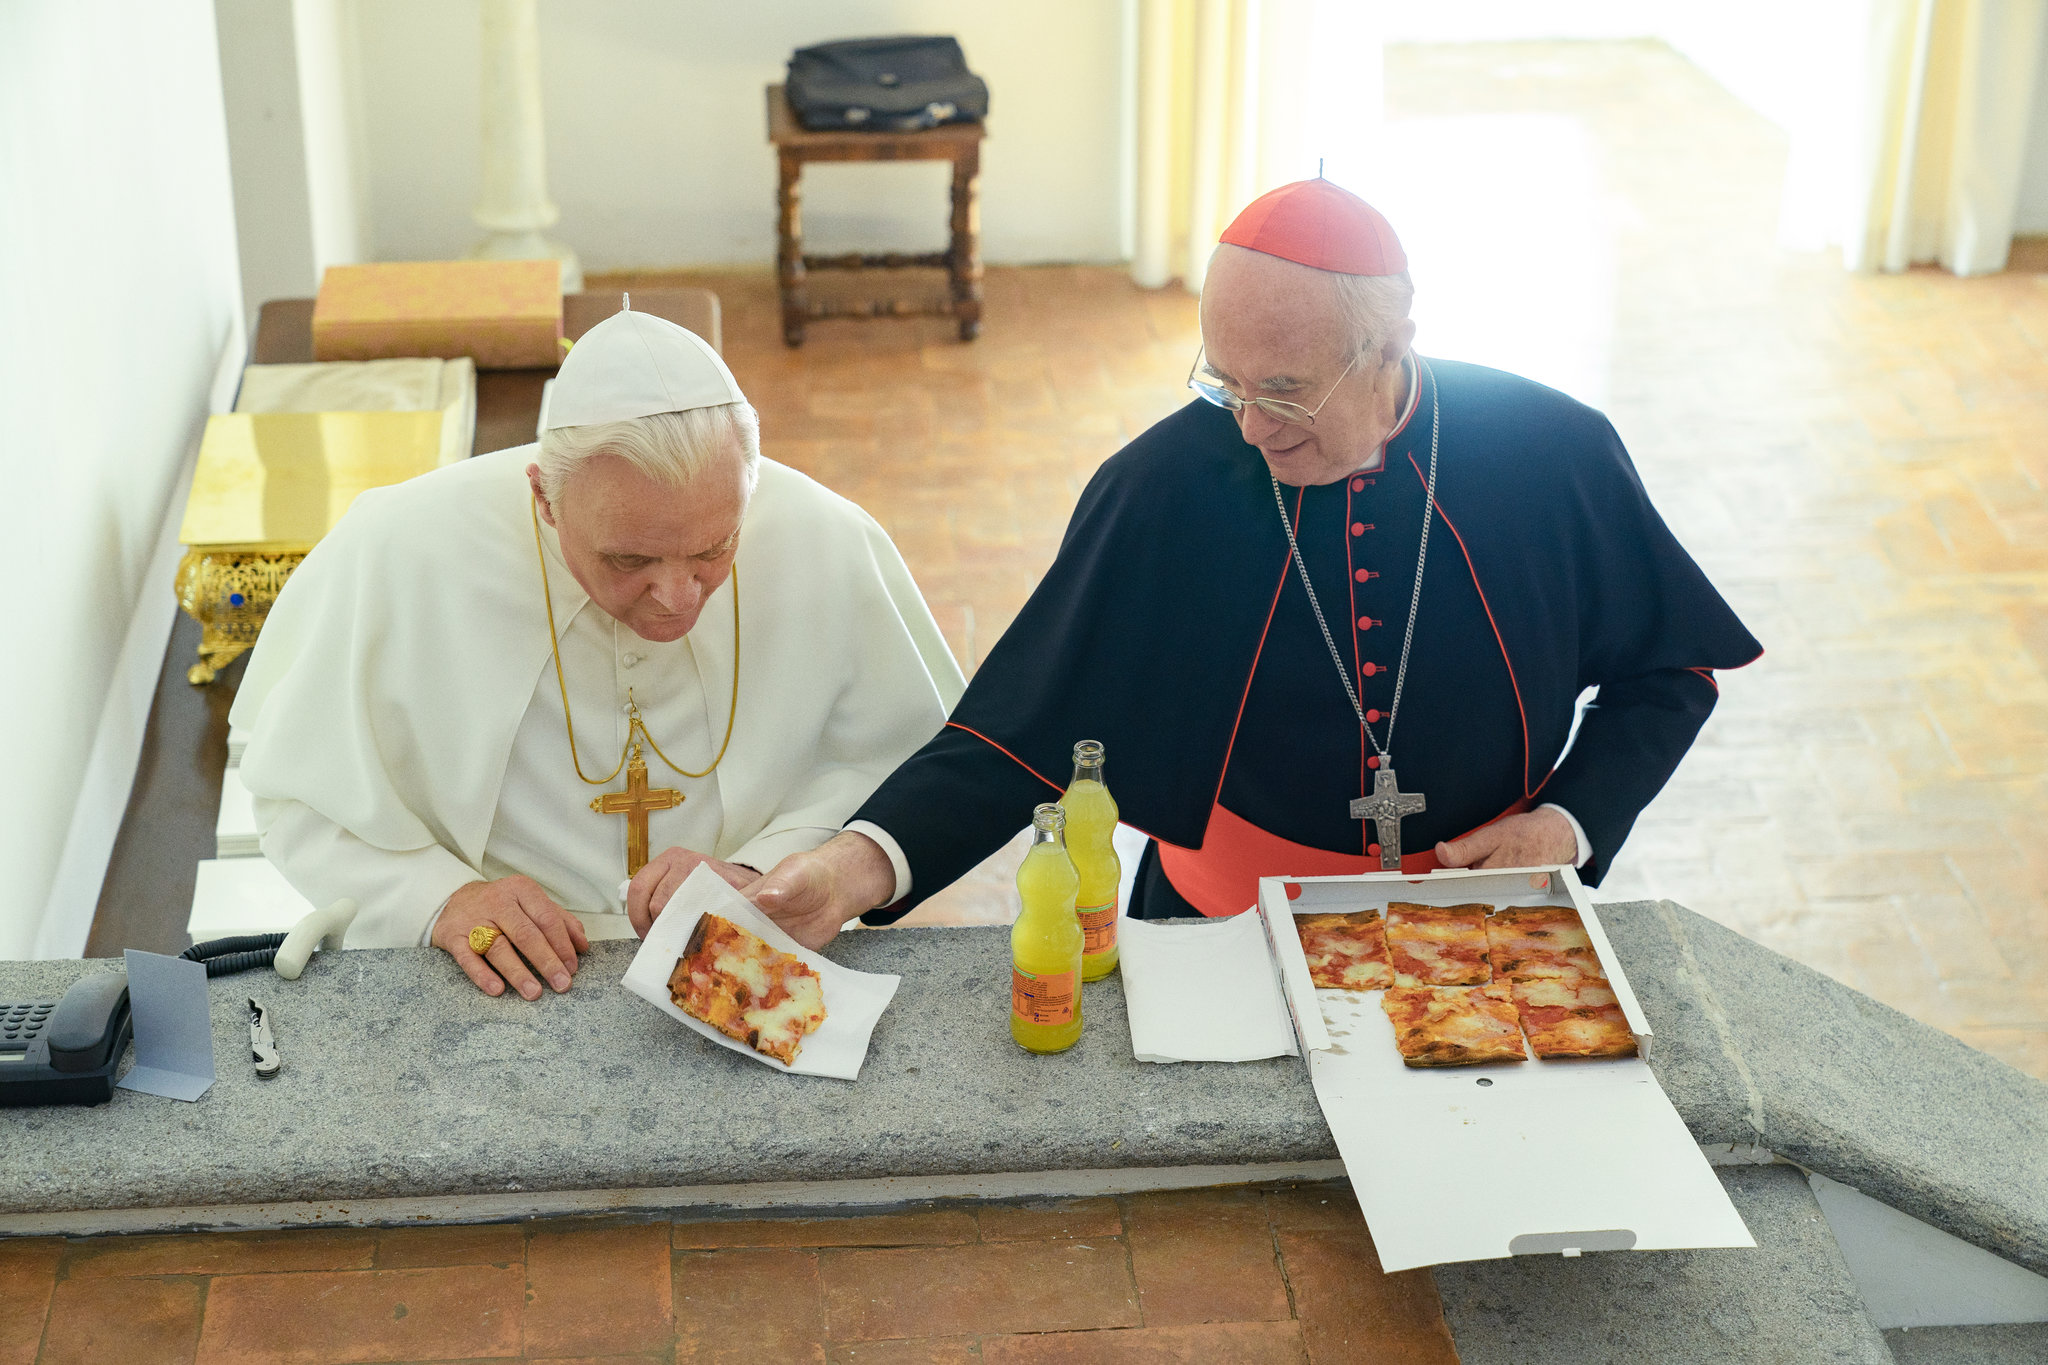 Netflix, The Two Popes, Jonathan Pryce, Anthony Hopkins, Pizza